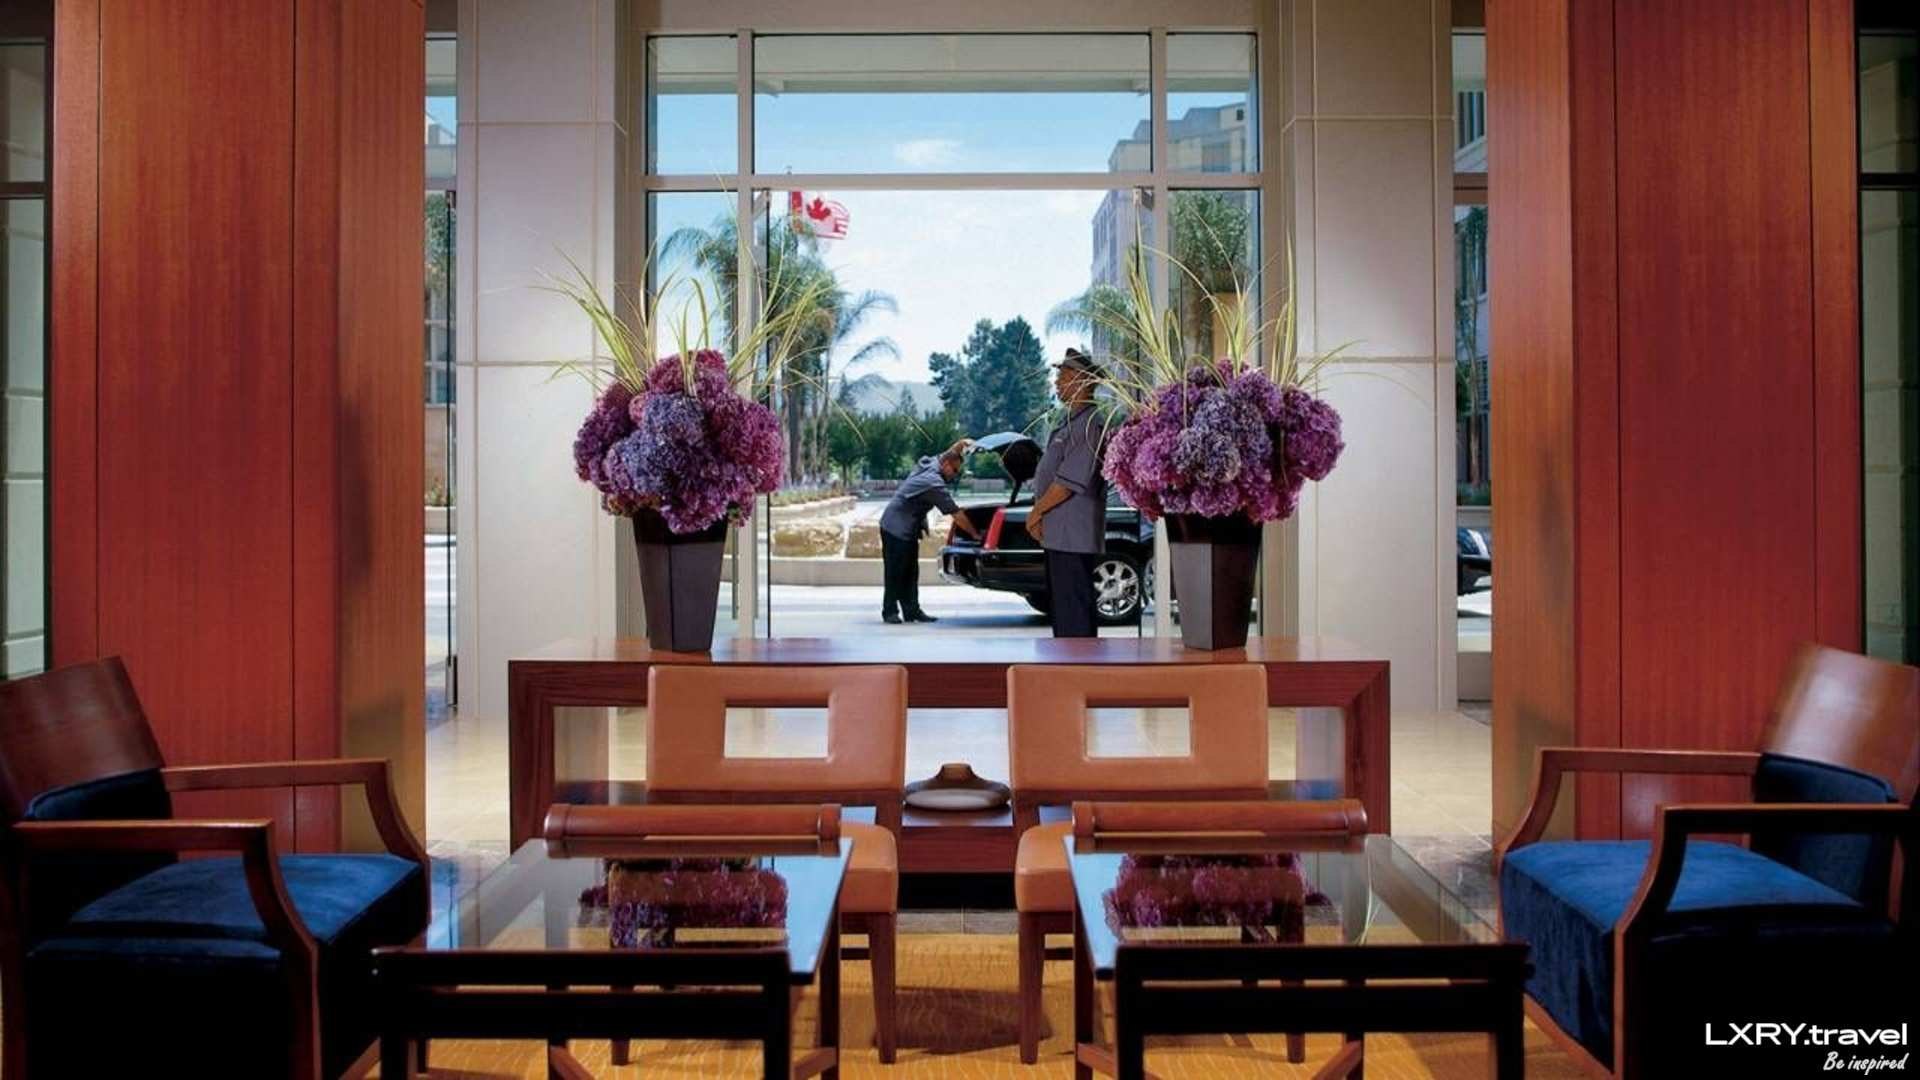 Four Seasons Hotel Silicon Valley at East Palo Alto 24/35